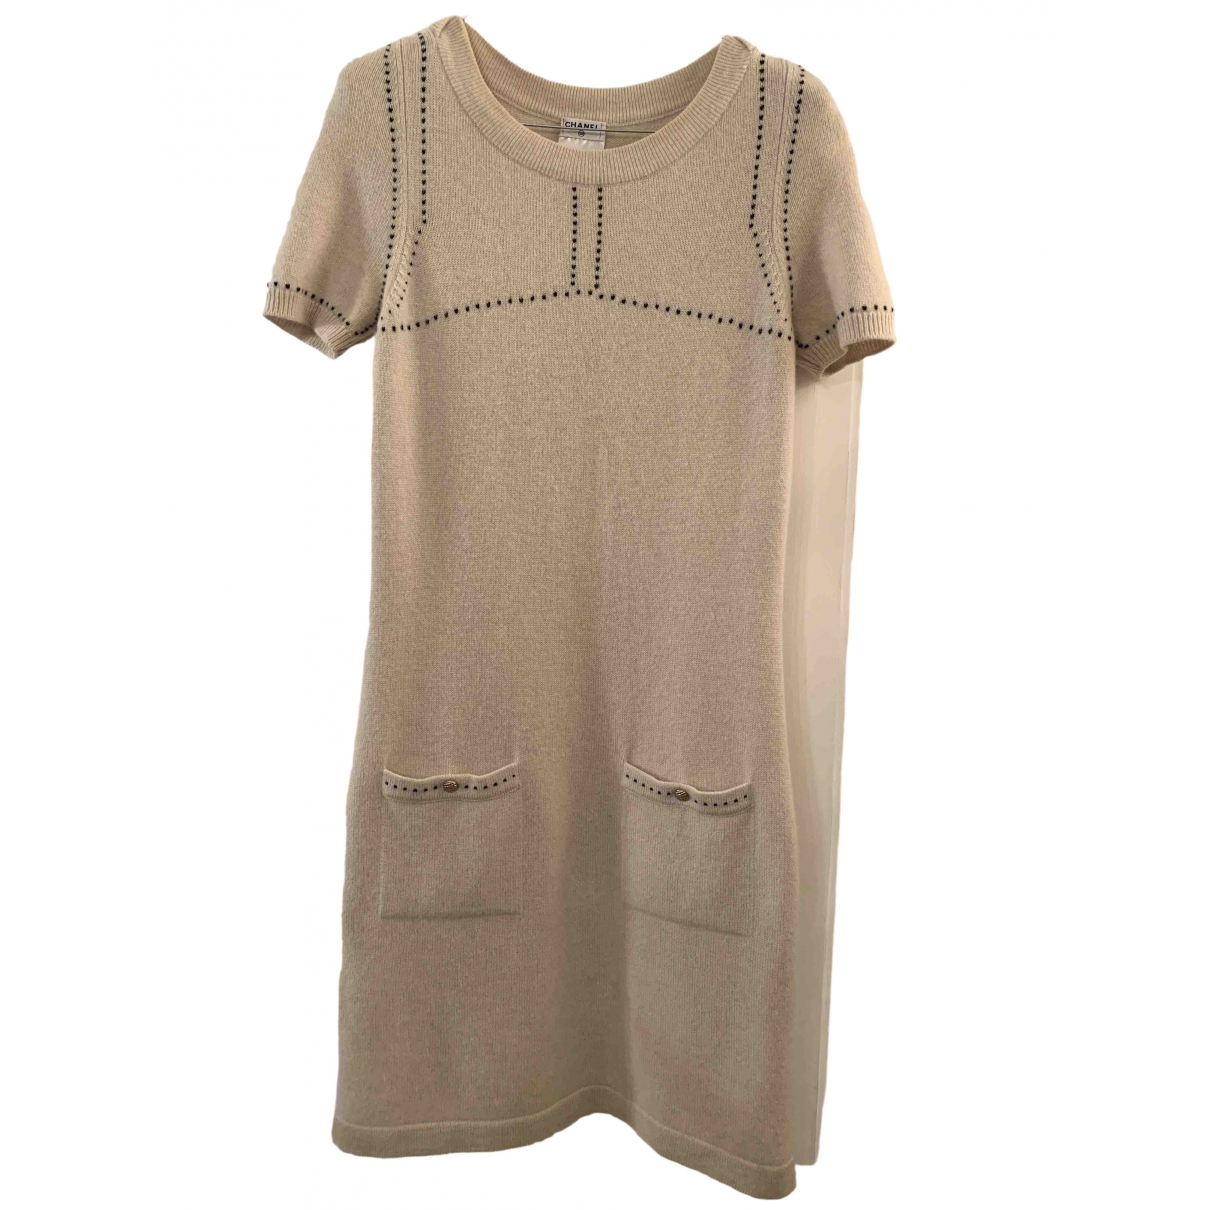 Chanel \N Multicolour Cashmere dress for Women 38 FR